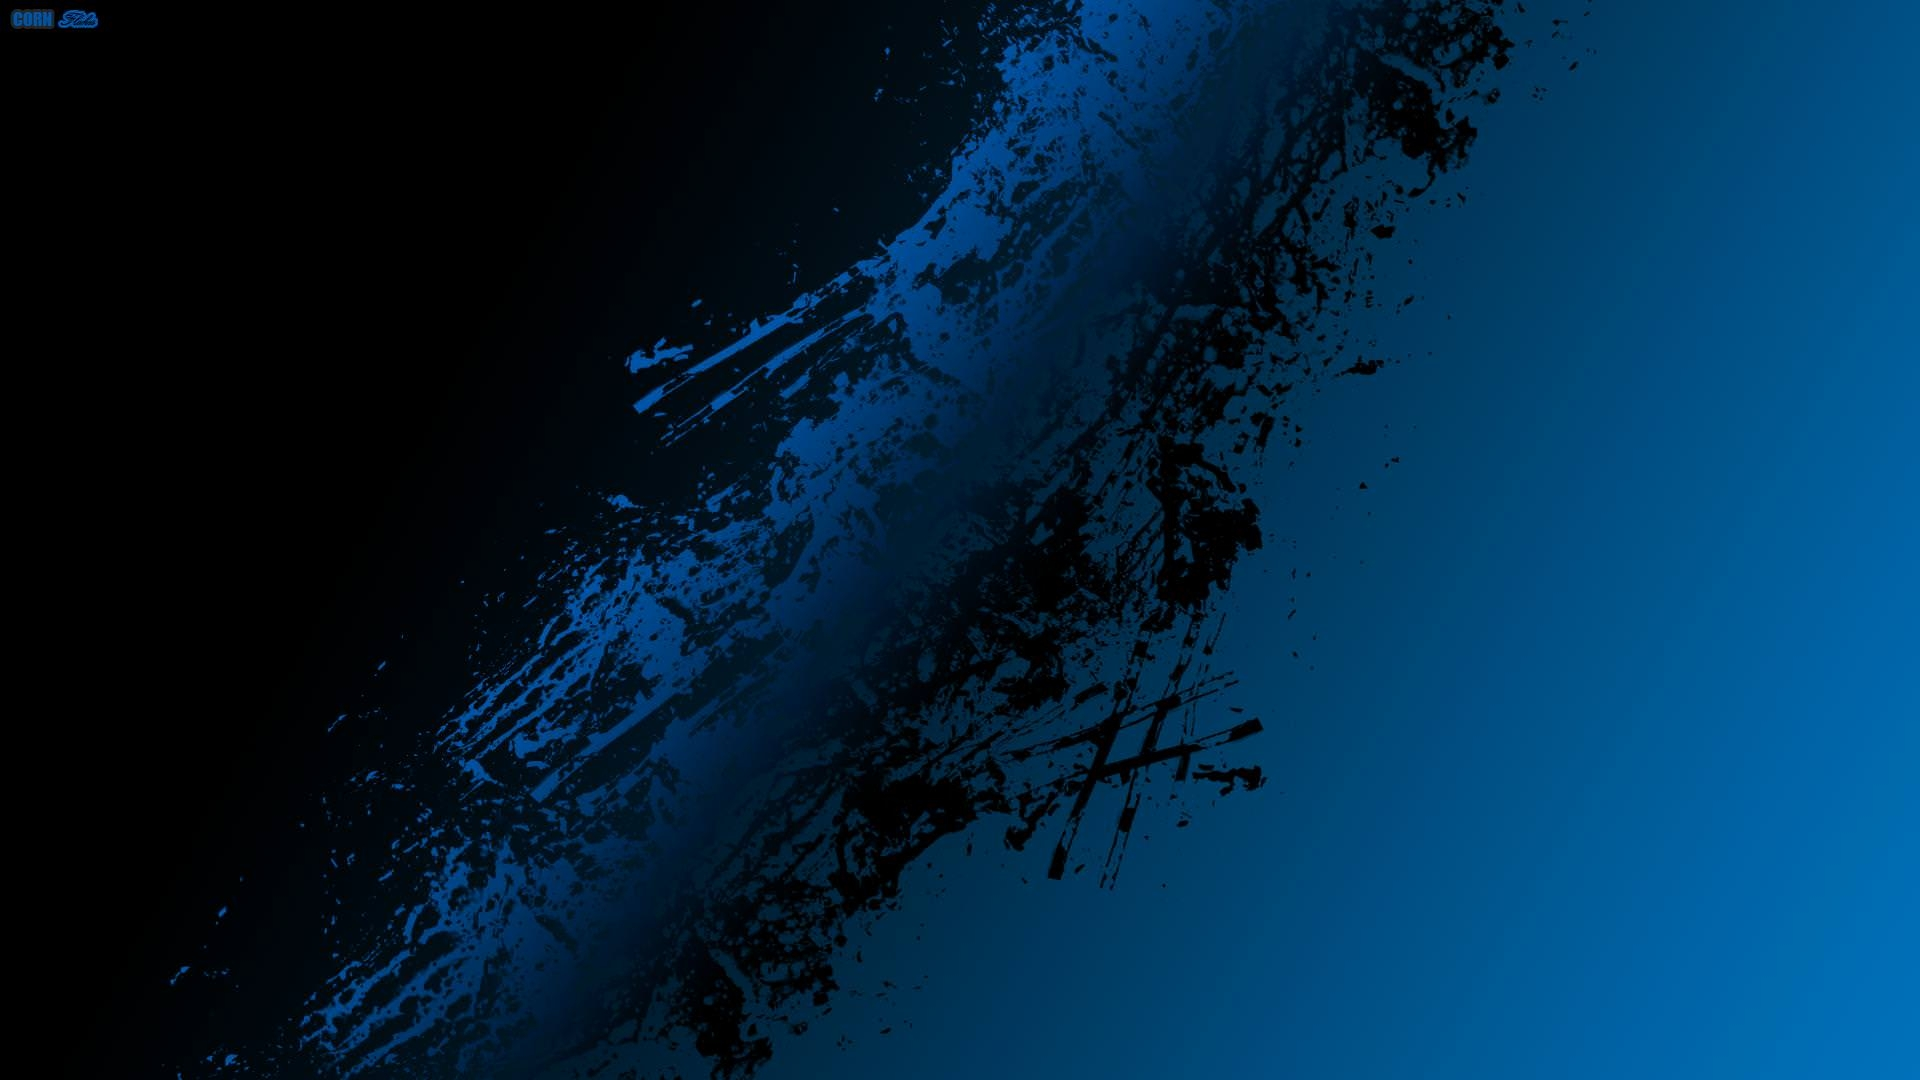 Black & Blue Abstract Wallpaper